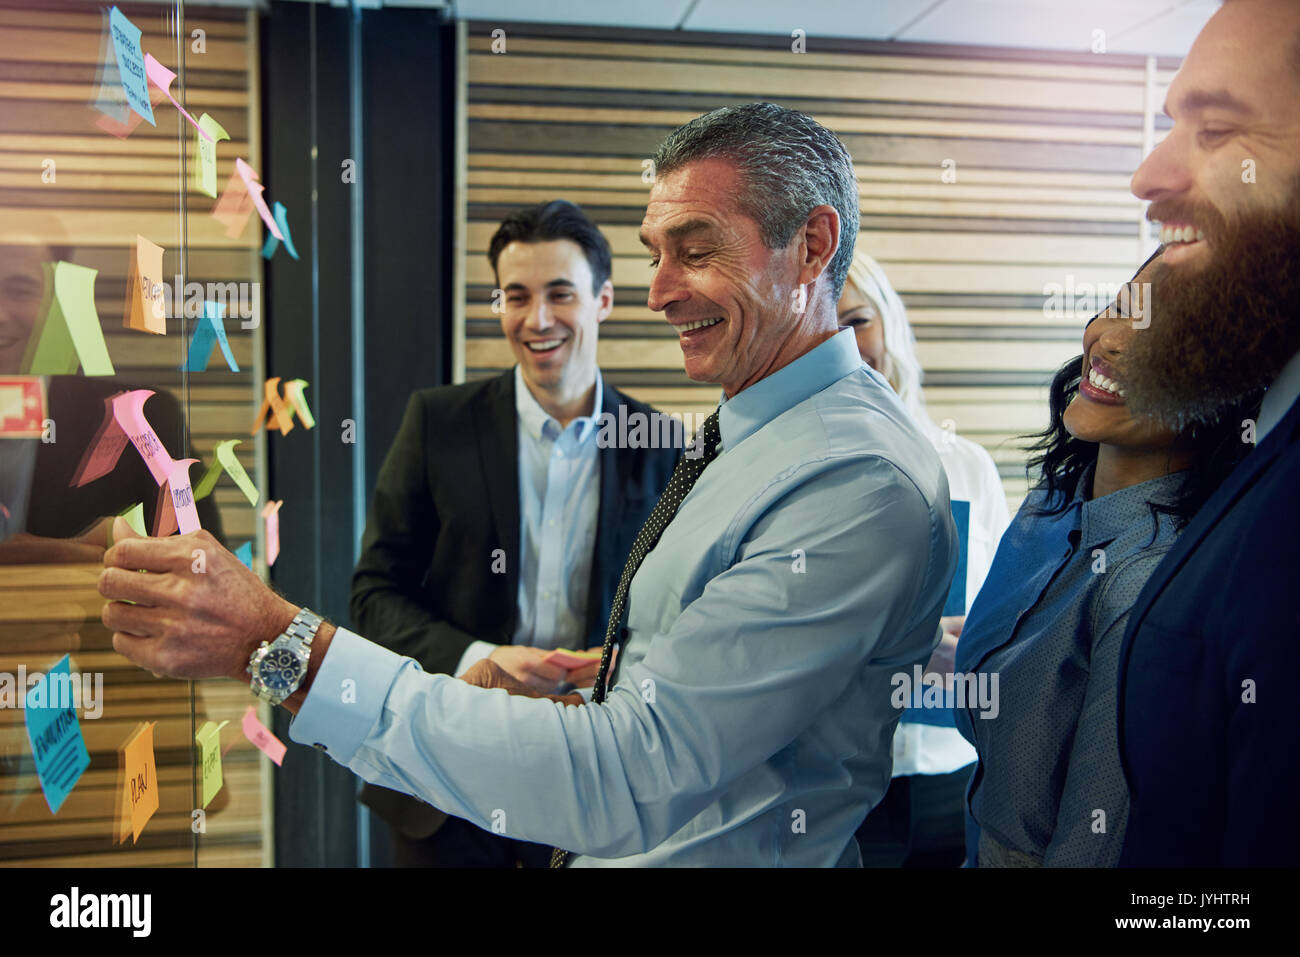 Side view of smiling businesspeople touching and looking at sticky notes on glass in office - Stock Image